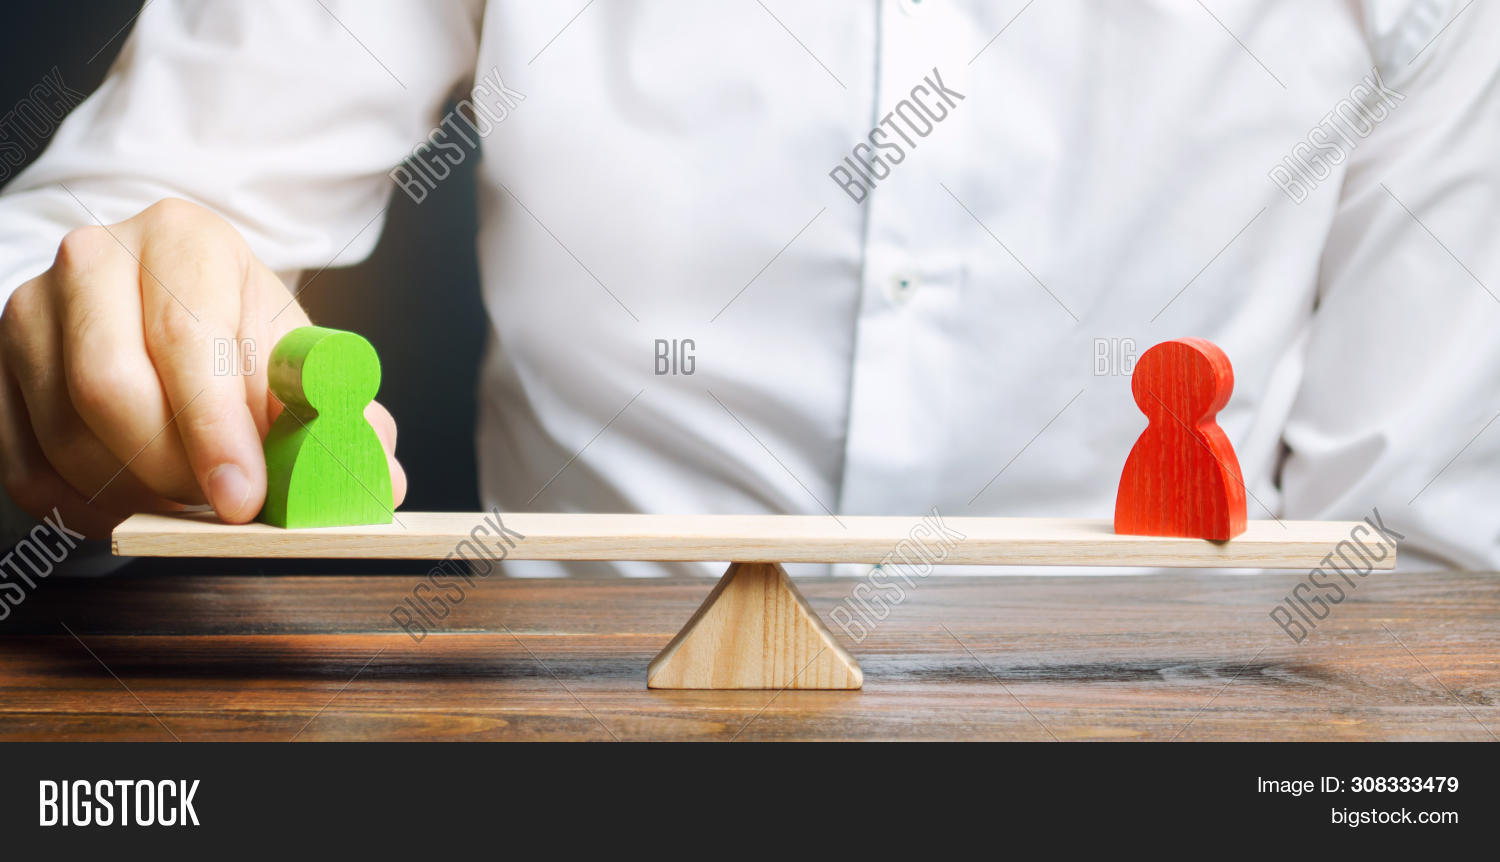 Wooden Figures Of People On Scales And A Mediator / Arbitrator. Resolving Conflict Situations And Di